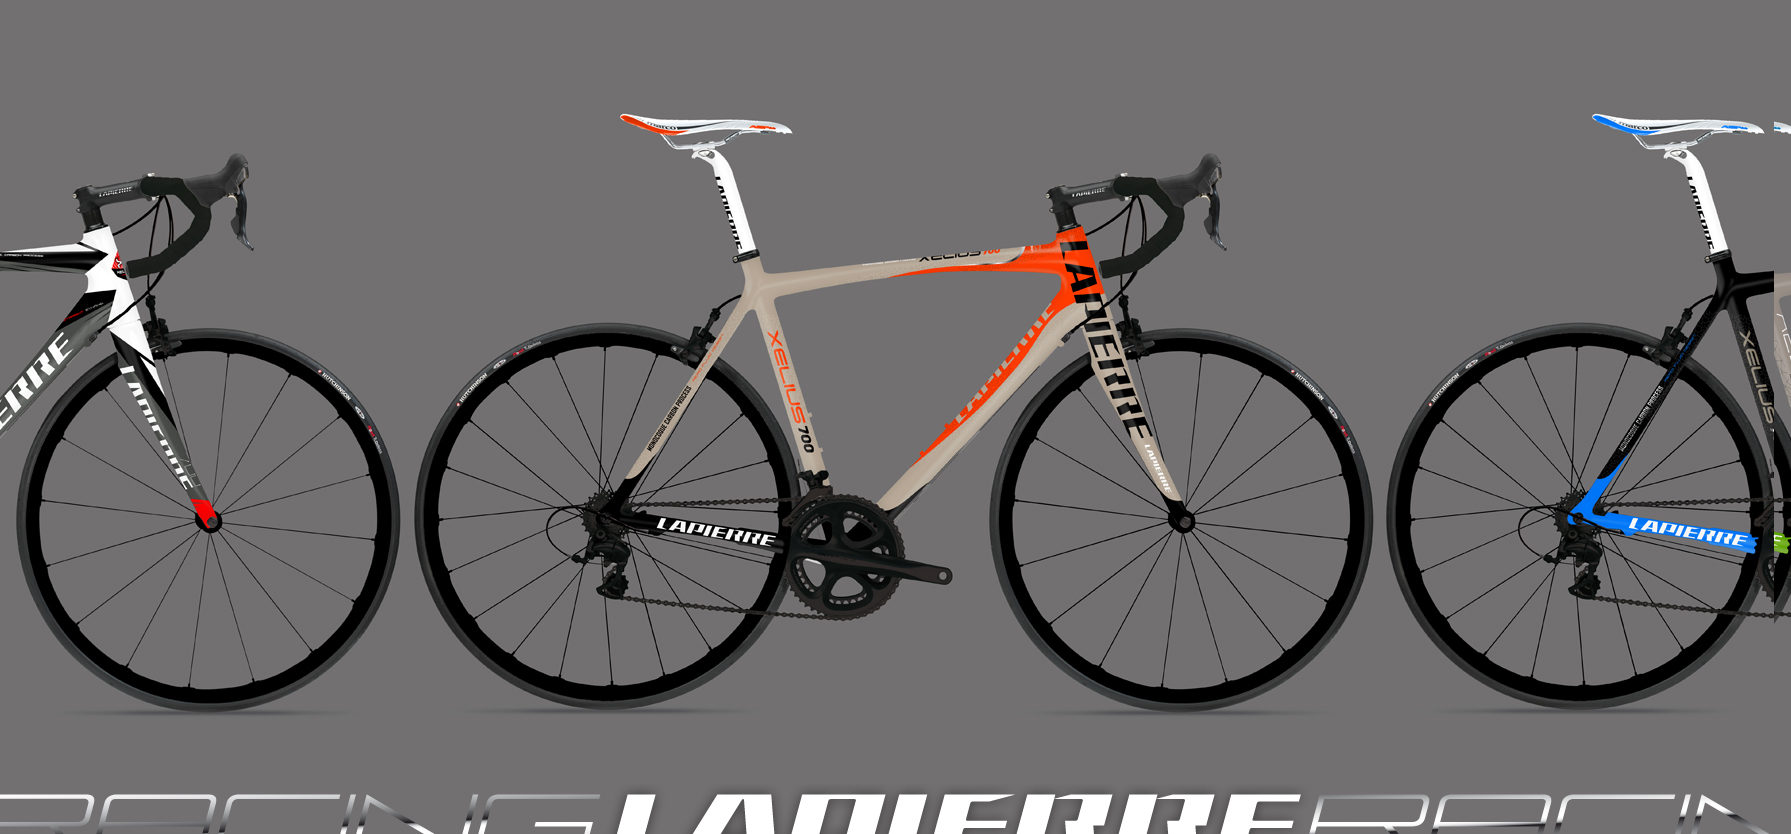 cycle_lapierre_gamme_course_1